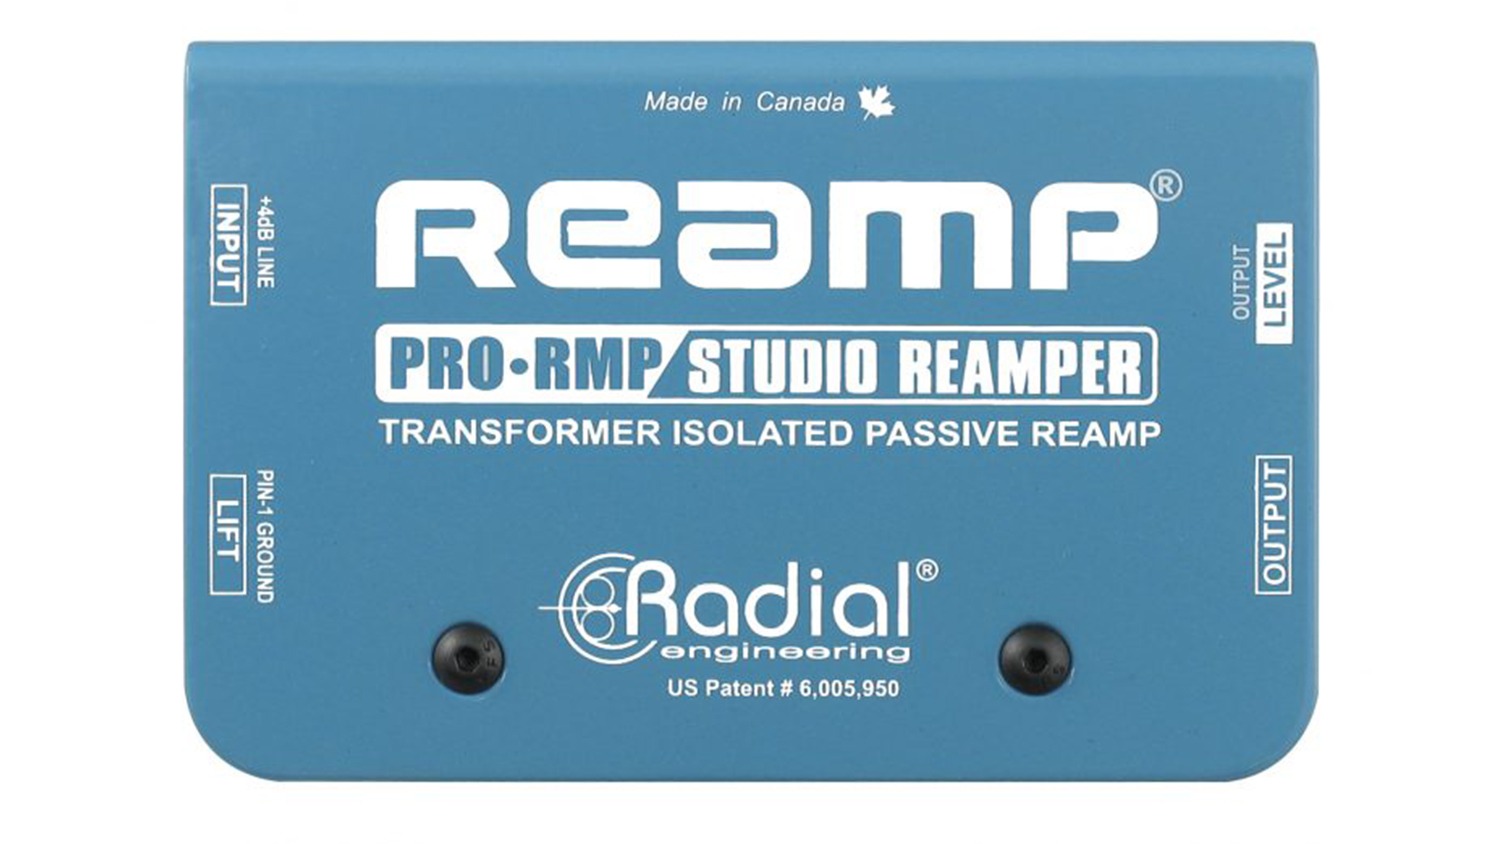 radial engineering prormp reamp box